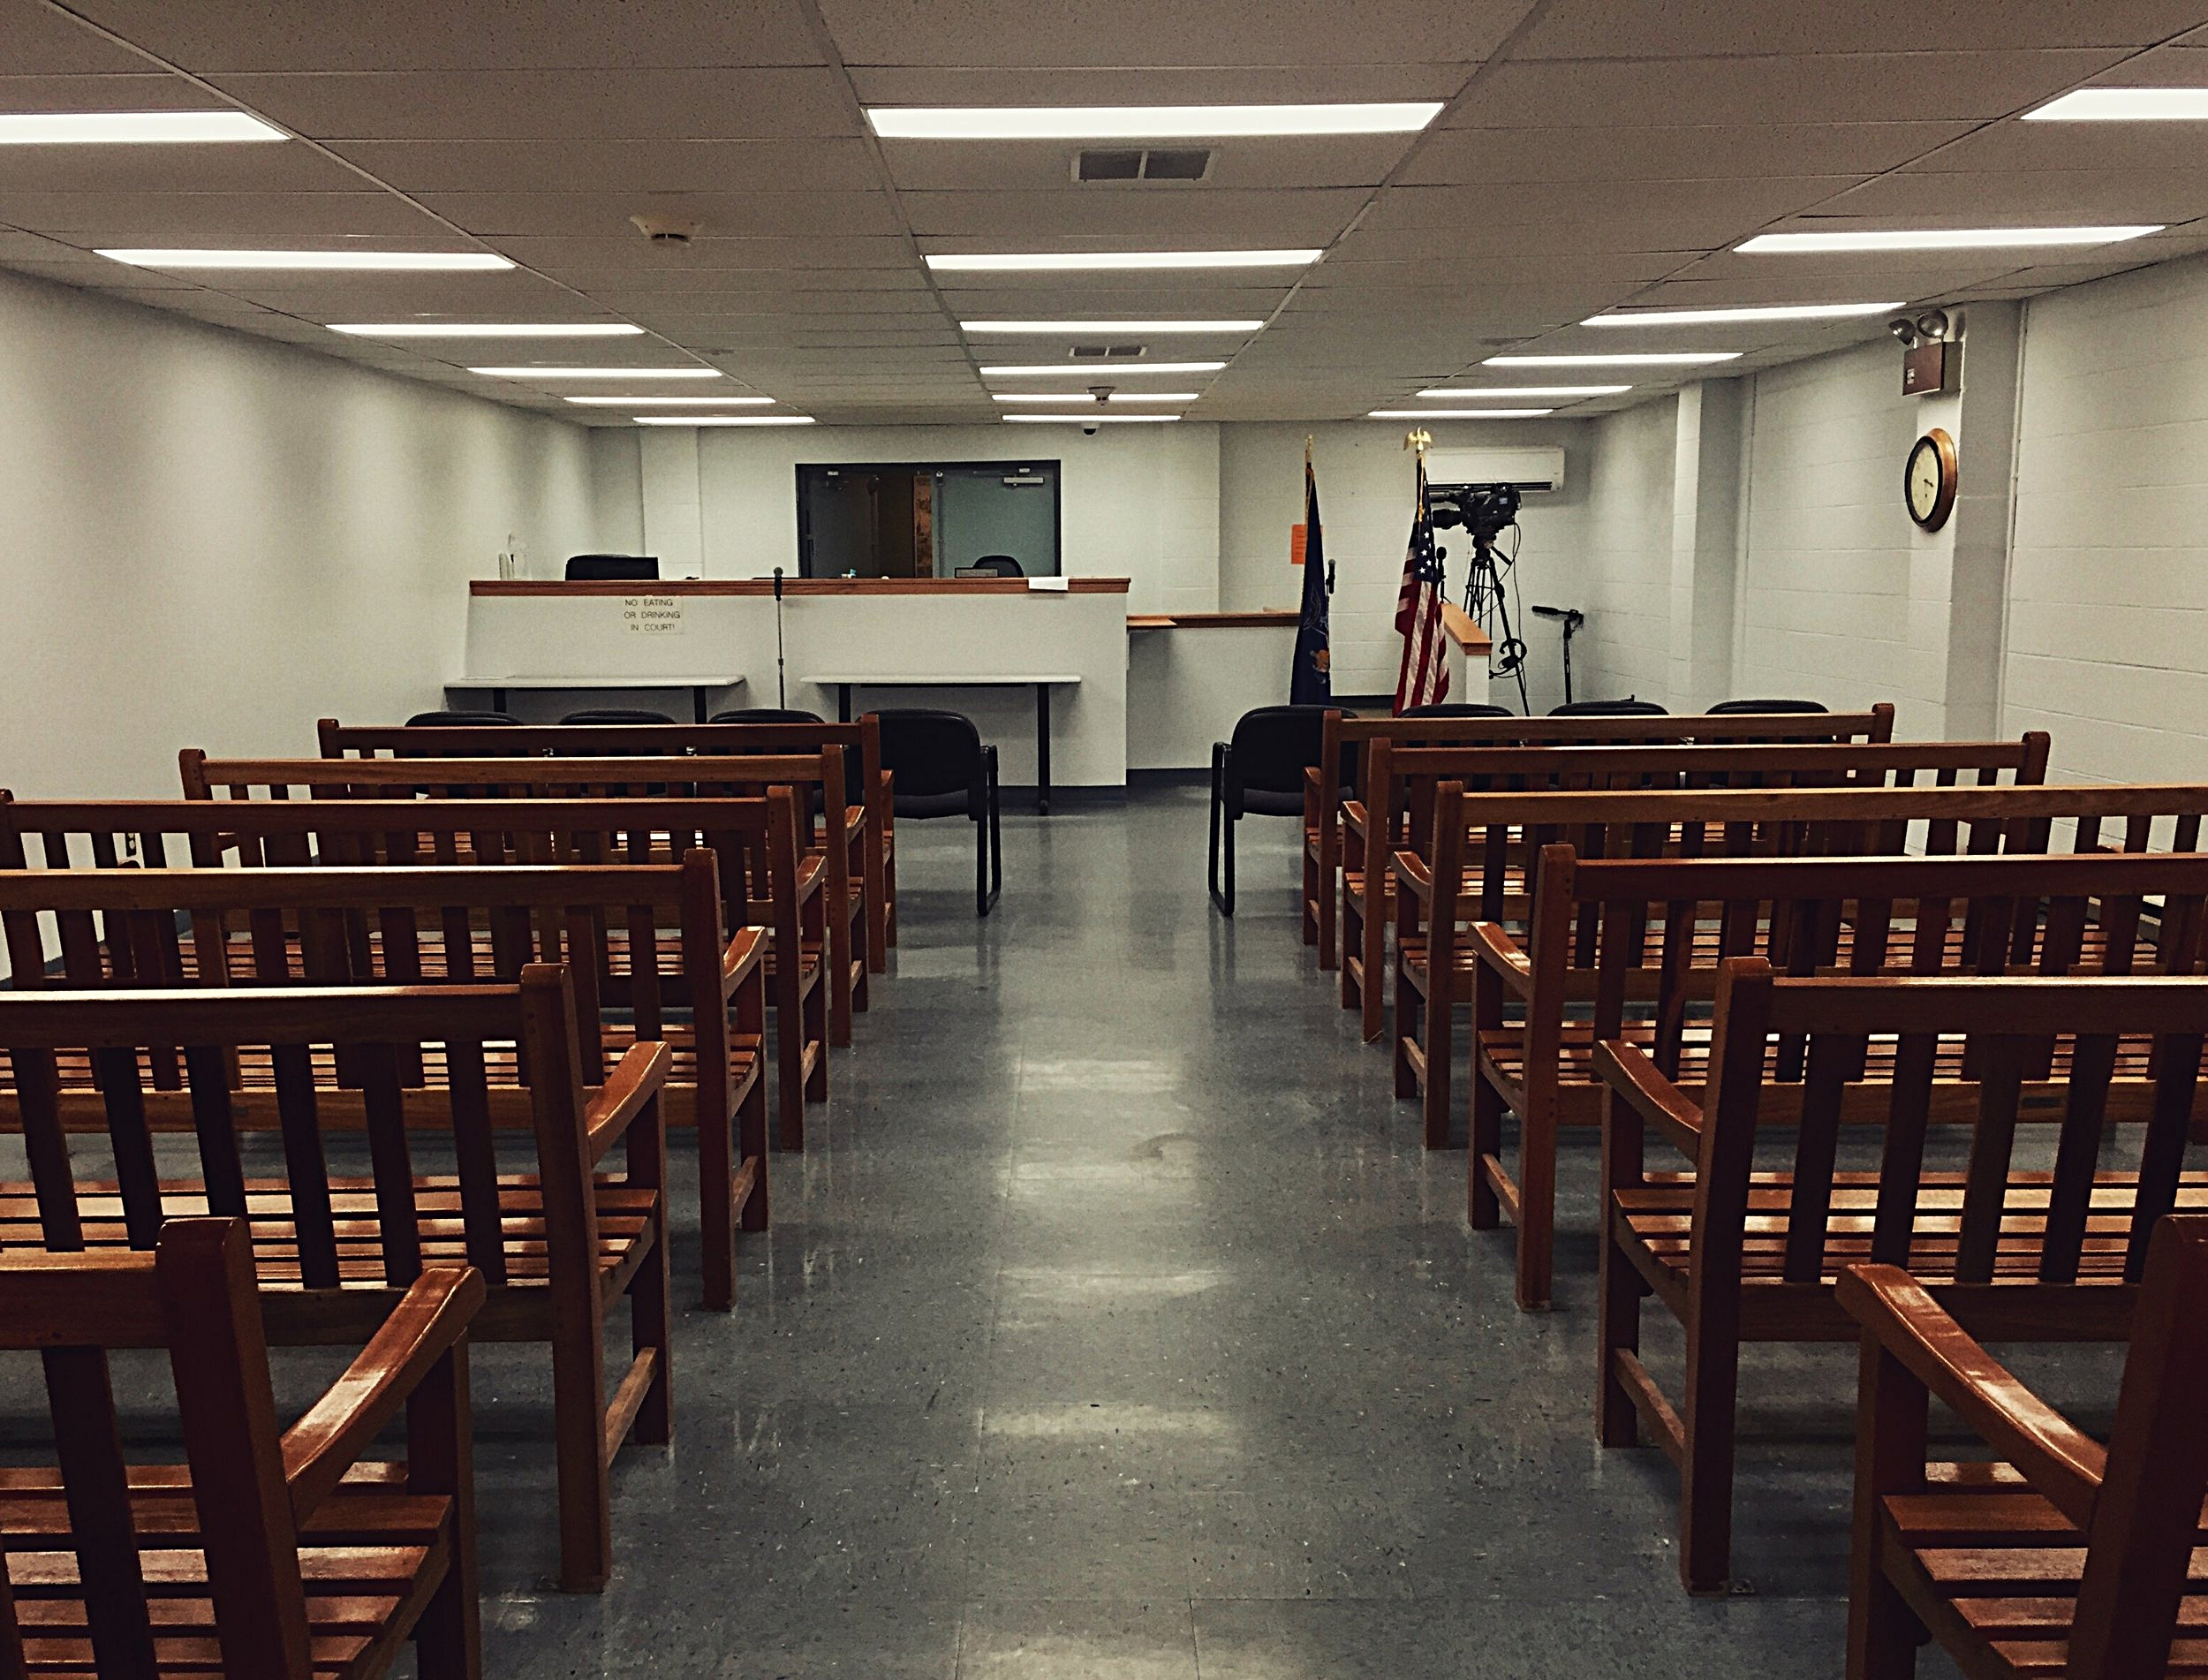 Clinton County Court in Plattsburgh, N.Y.hours before Clinton Corrections Officer Eugene Palmer is charged with promoting prison contraband, official misconduct, and tampering with evidence after trying to destroy paintings from Richard Matt in exchange for tools. (Chelsia Rose Marcius/June 25, 2015)